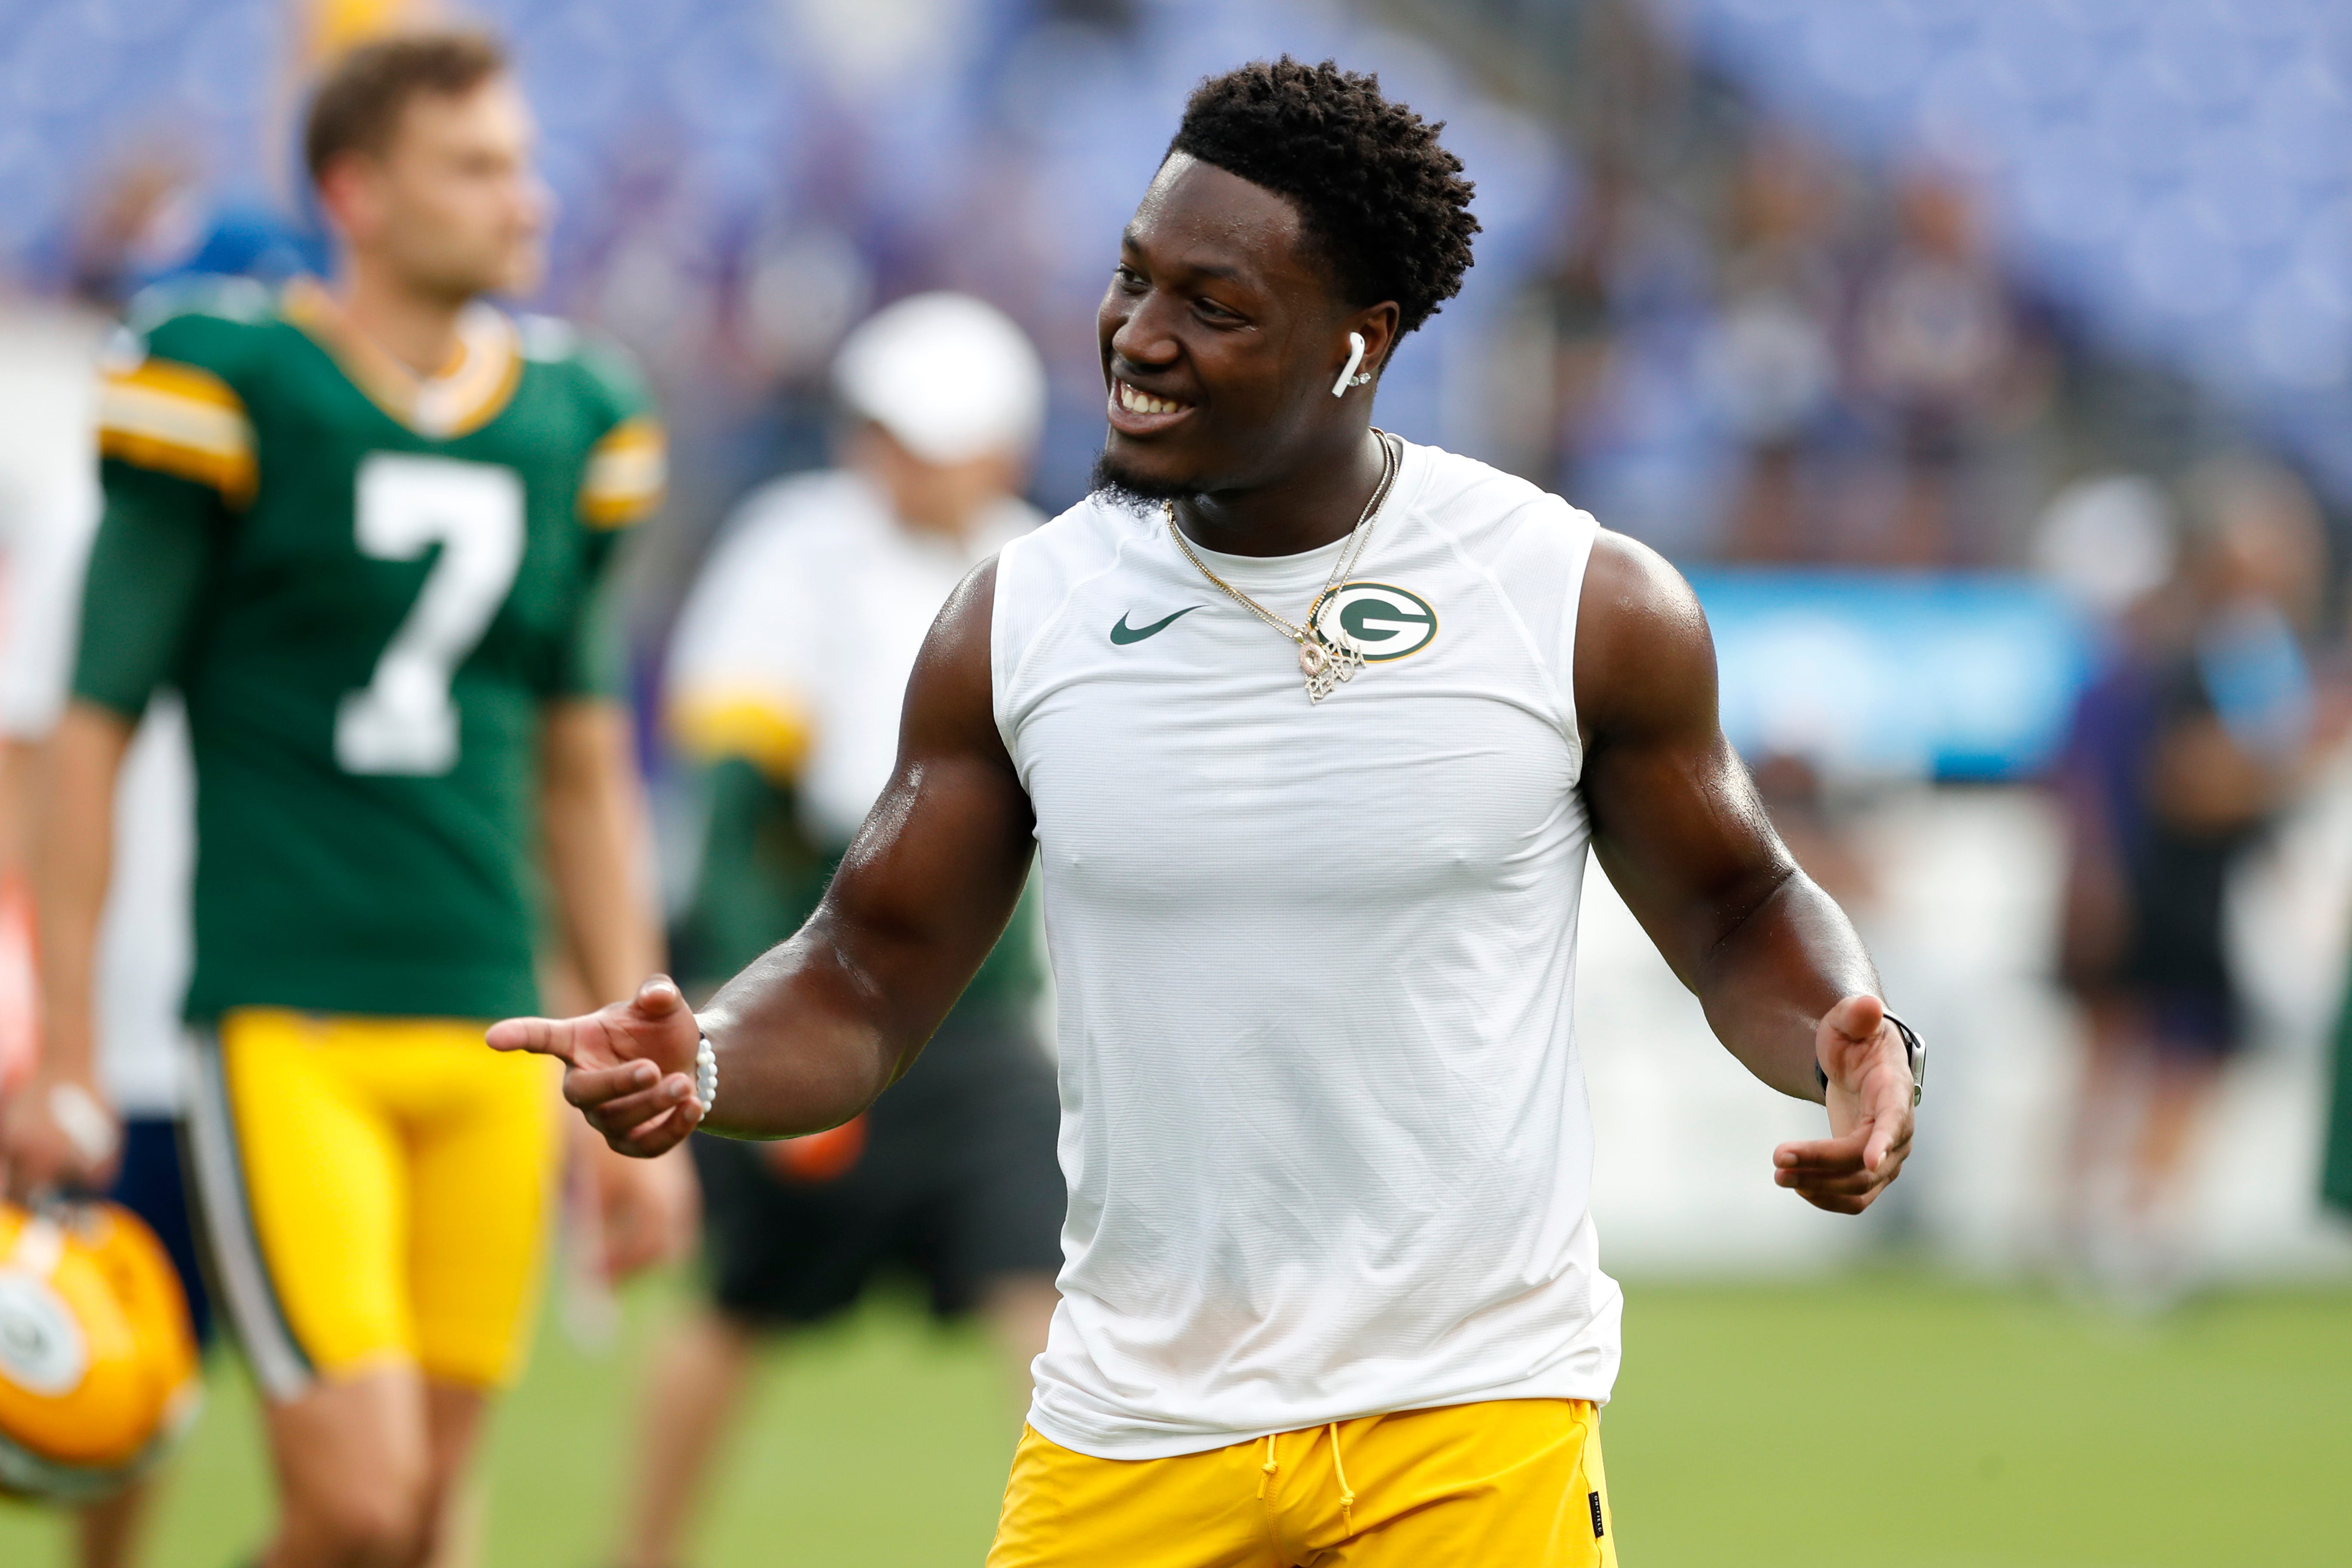 Darnell Savage #26 of the Green Bay Packers warms up prior to a preseason game against the Baltimore Ravens at M&T Bank Stadium on Thursday, Aug. 15, in Baltimore, Maryland.